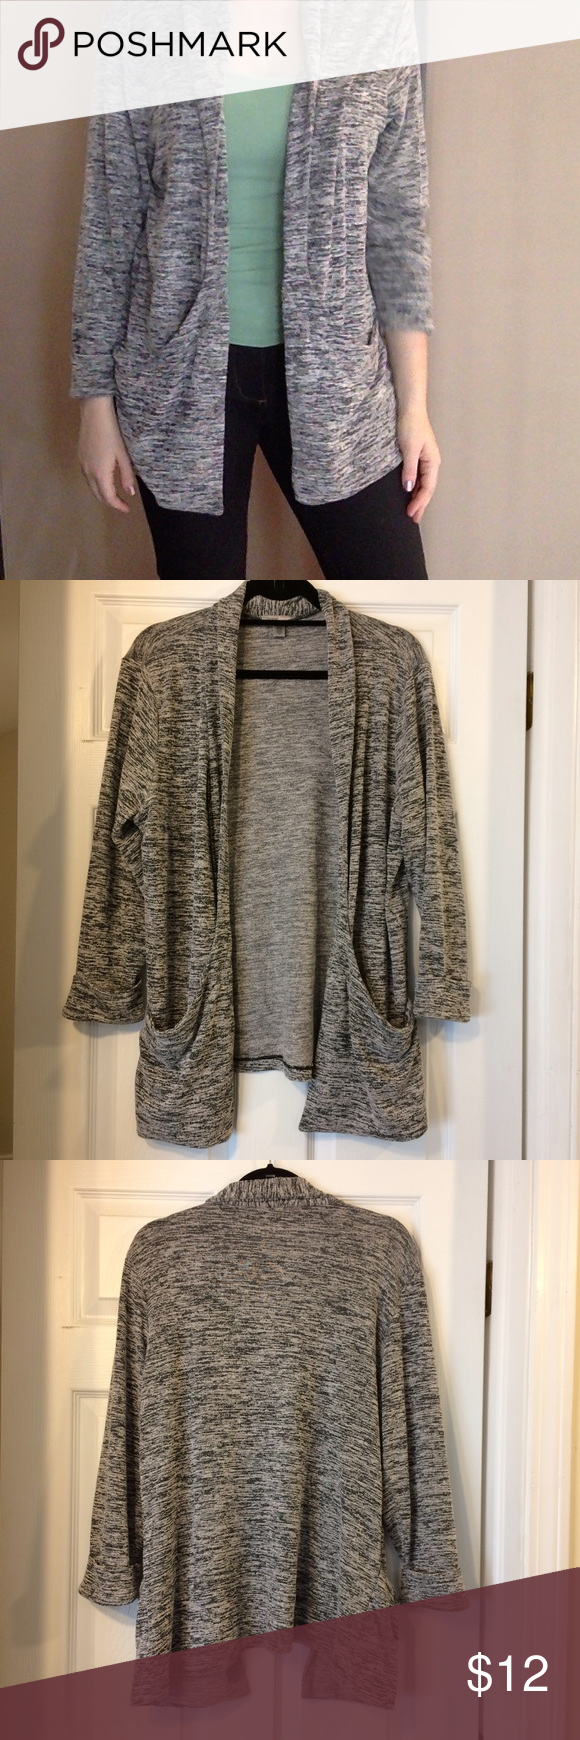 Final price drop - Cute gray cardigan sweater | Grey cardigan ...